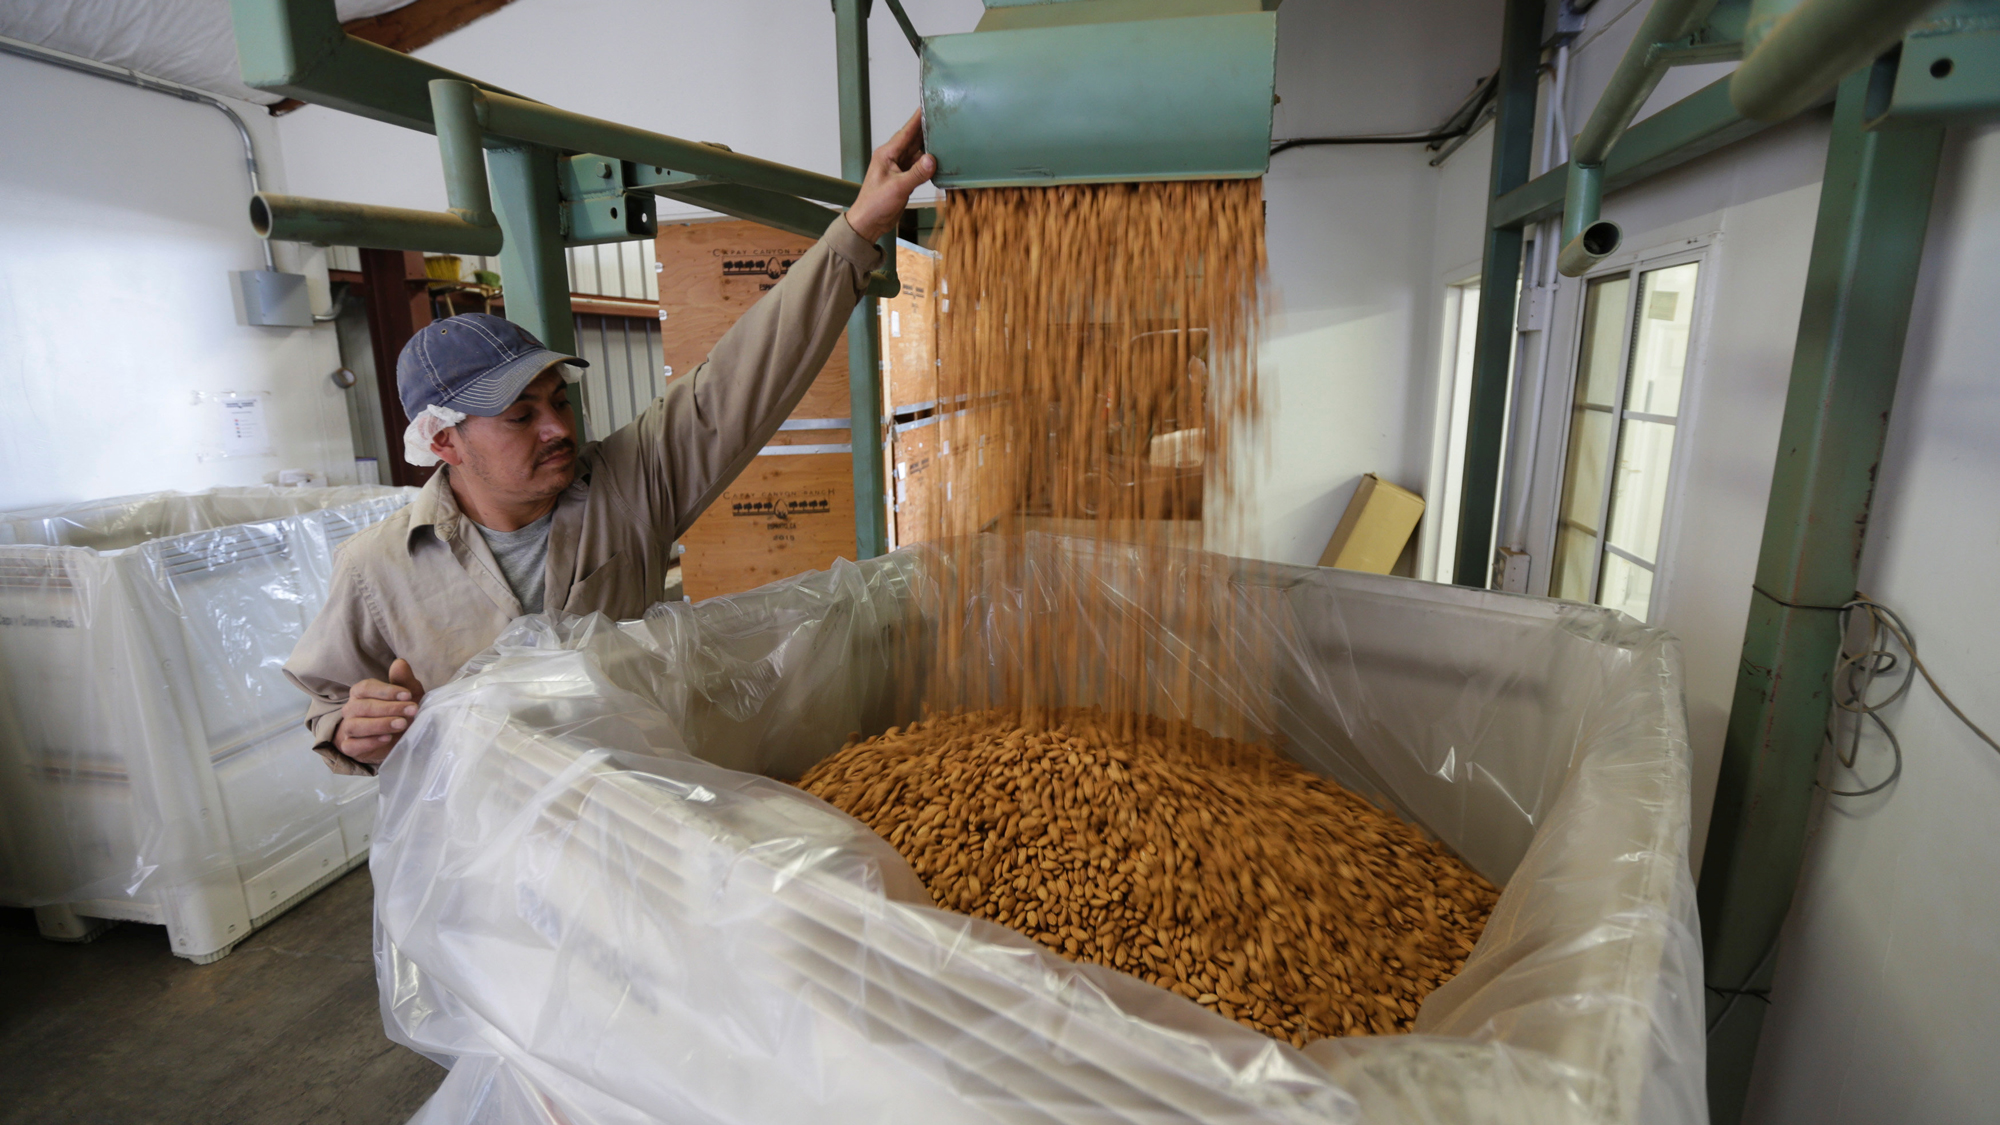 Carmelo Morillo fills a large, plastic-lined shipping container with almonds.